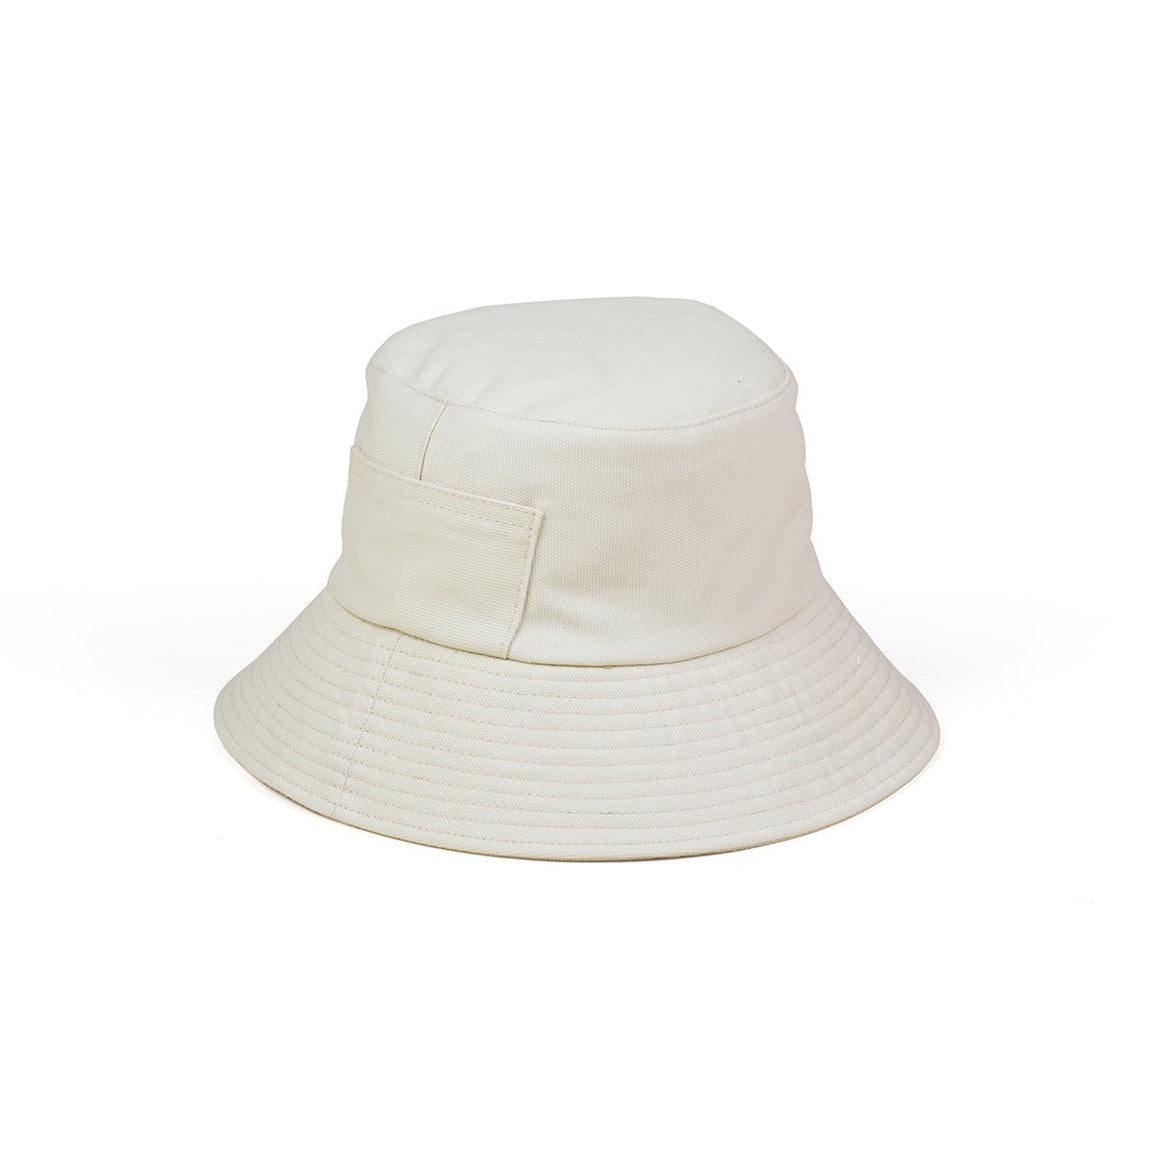 Lack of Color Bucket Hat Black or Beige